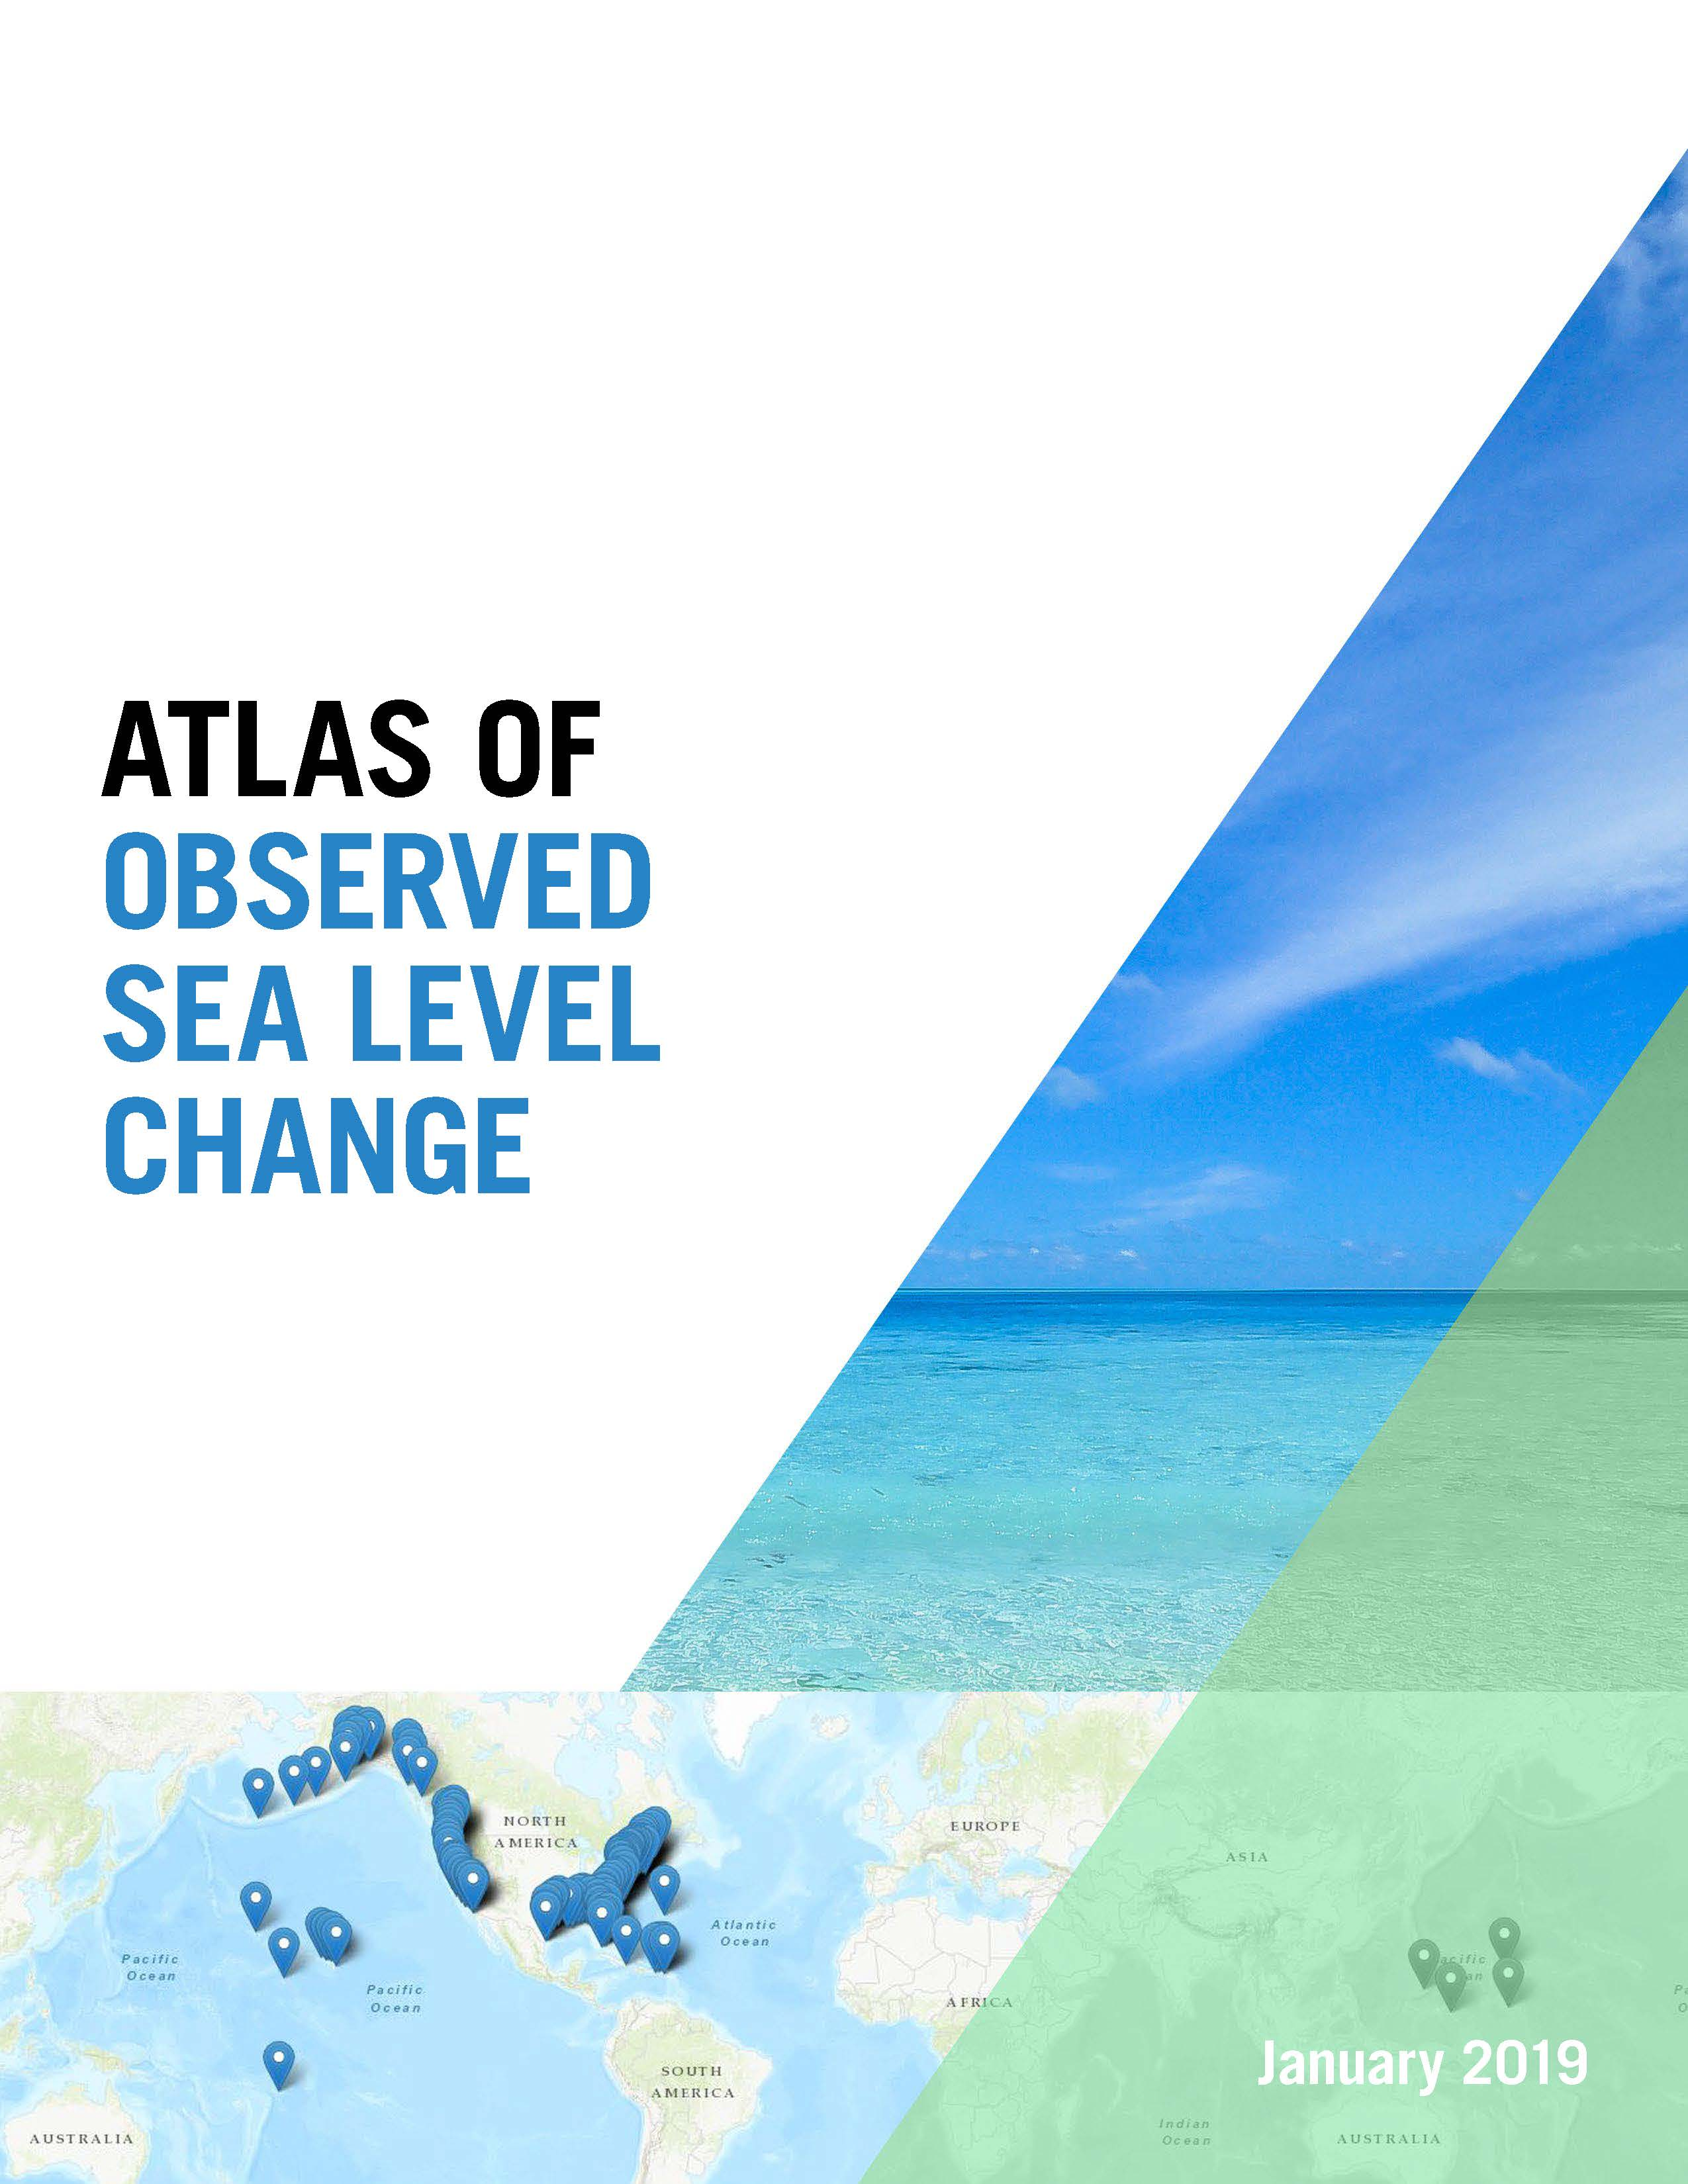 Atlas of Observed Sea Level Change